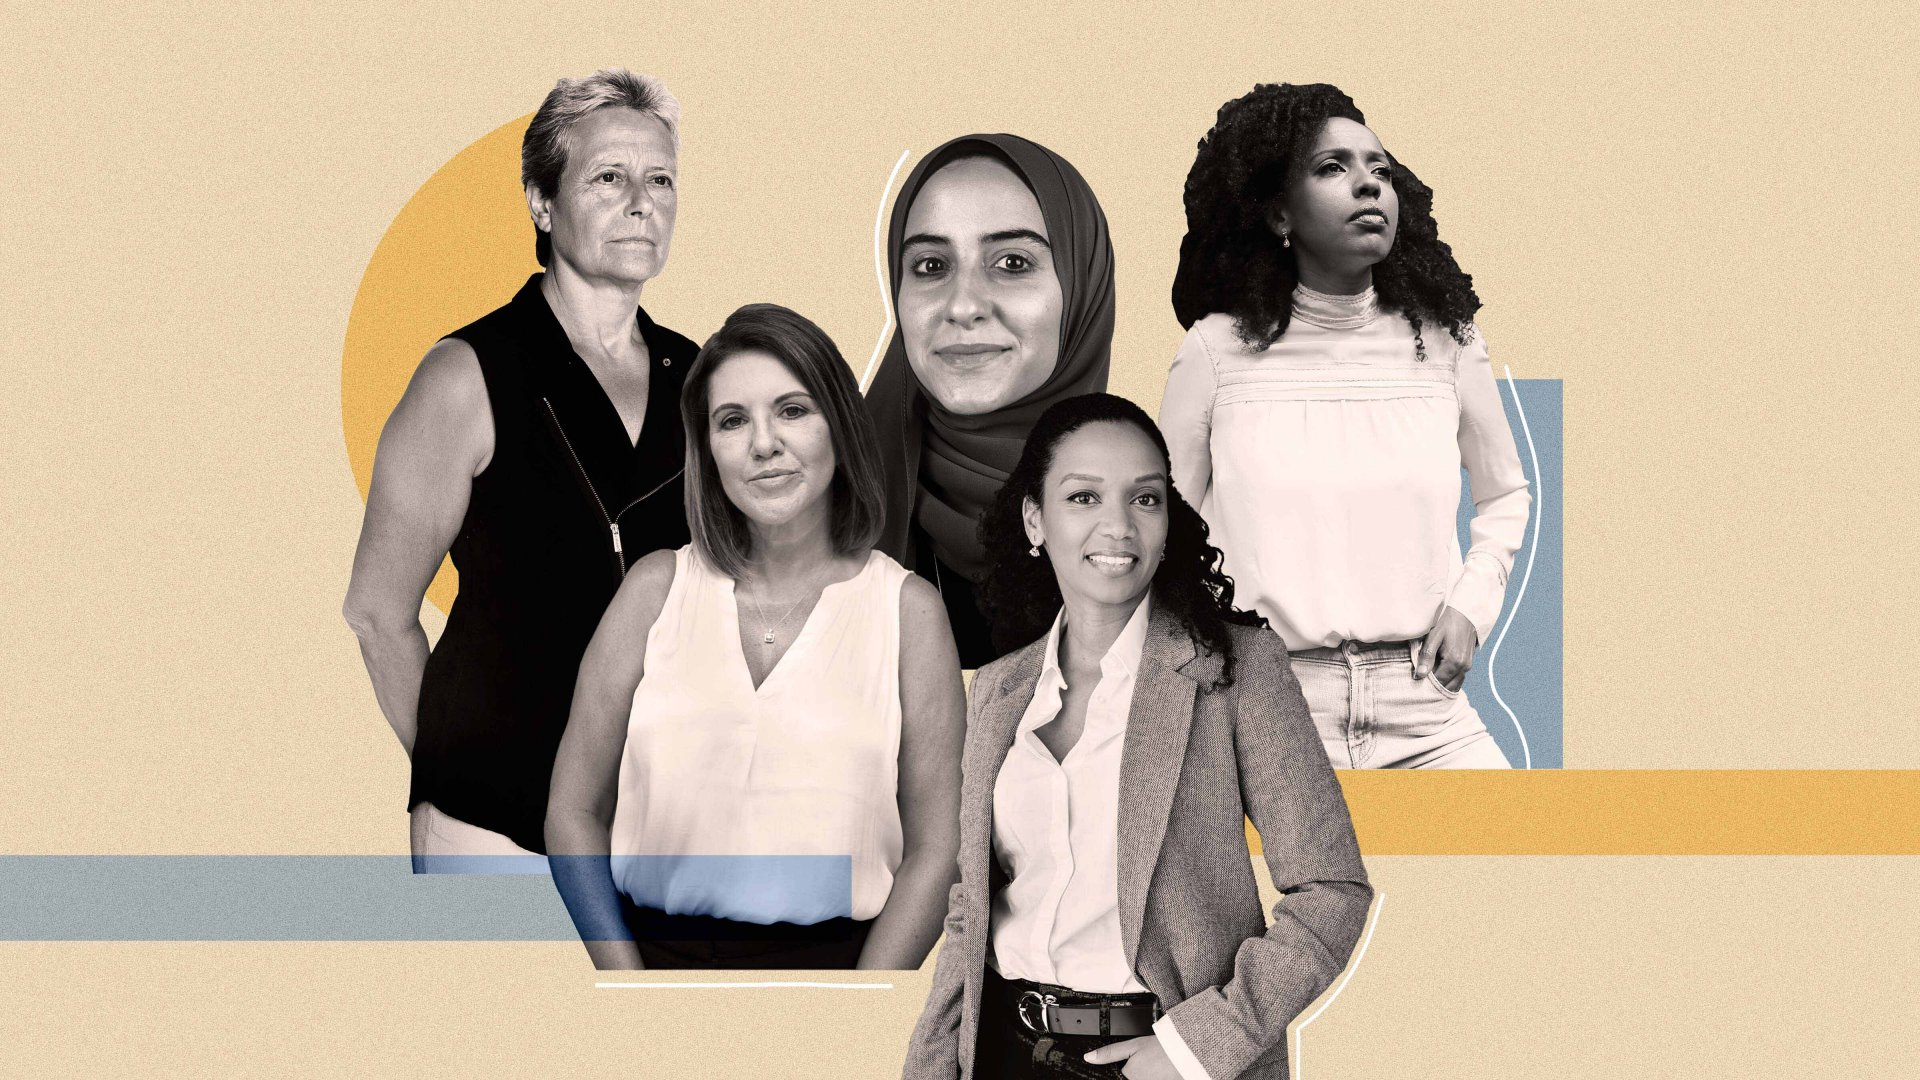 Meet the Most Inspiring Women in Entrepreneurship and Get Their Best Business Advice